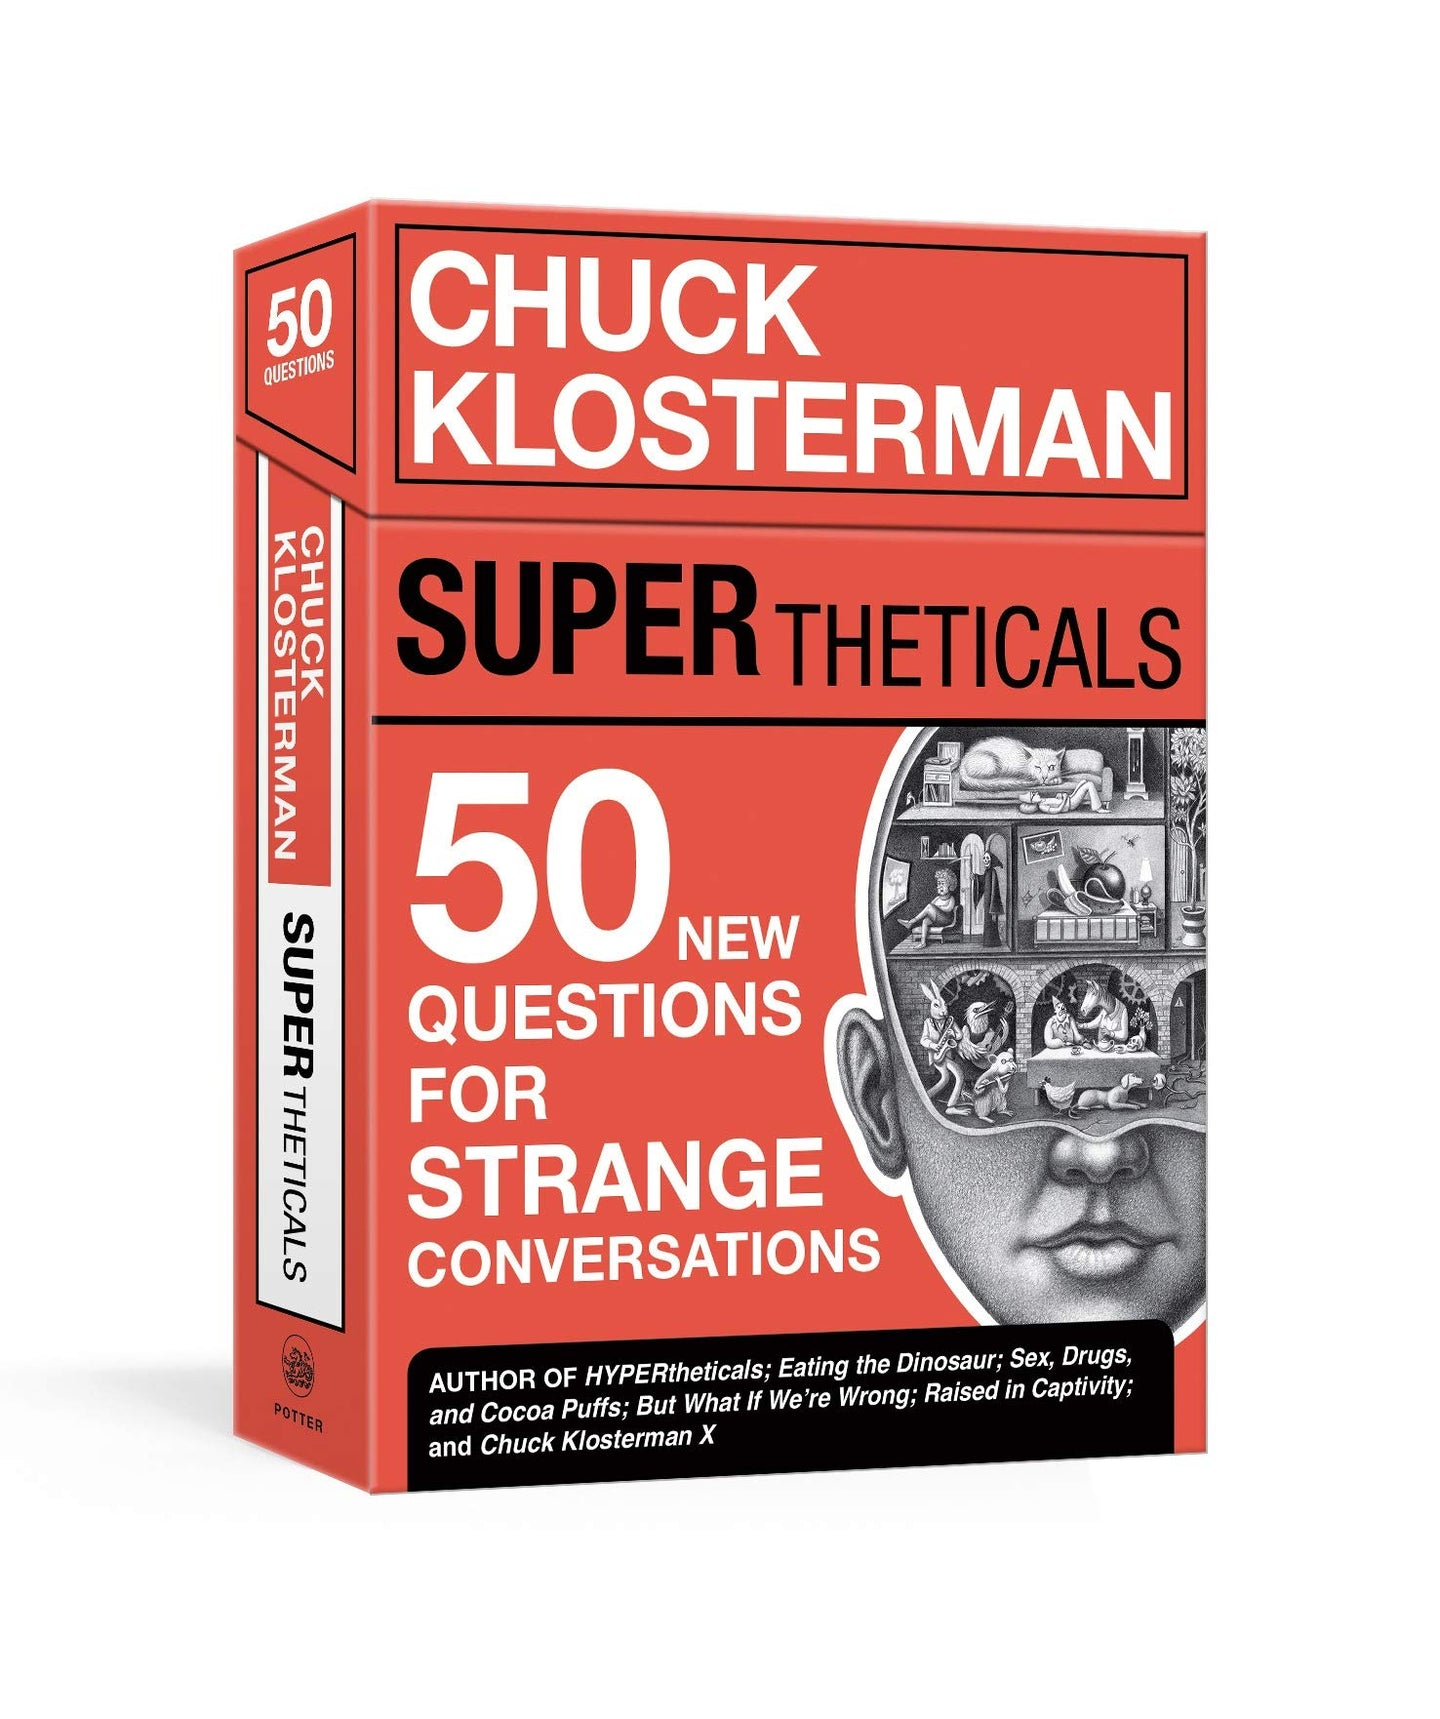 Chuck Klosterman Supertheticals 50 New Questions for Strange Conversations